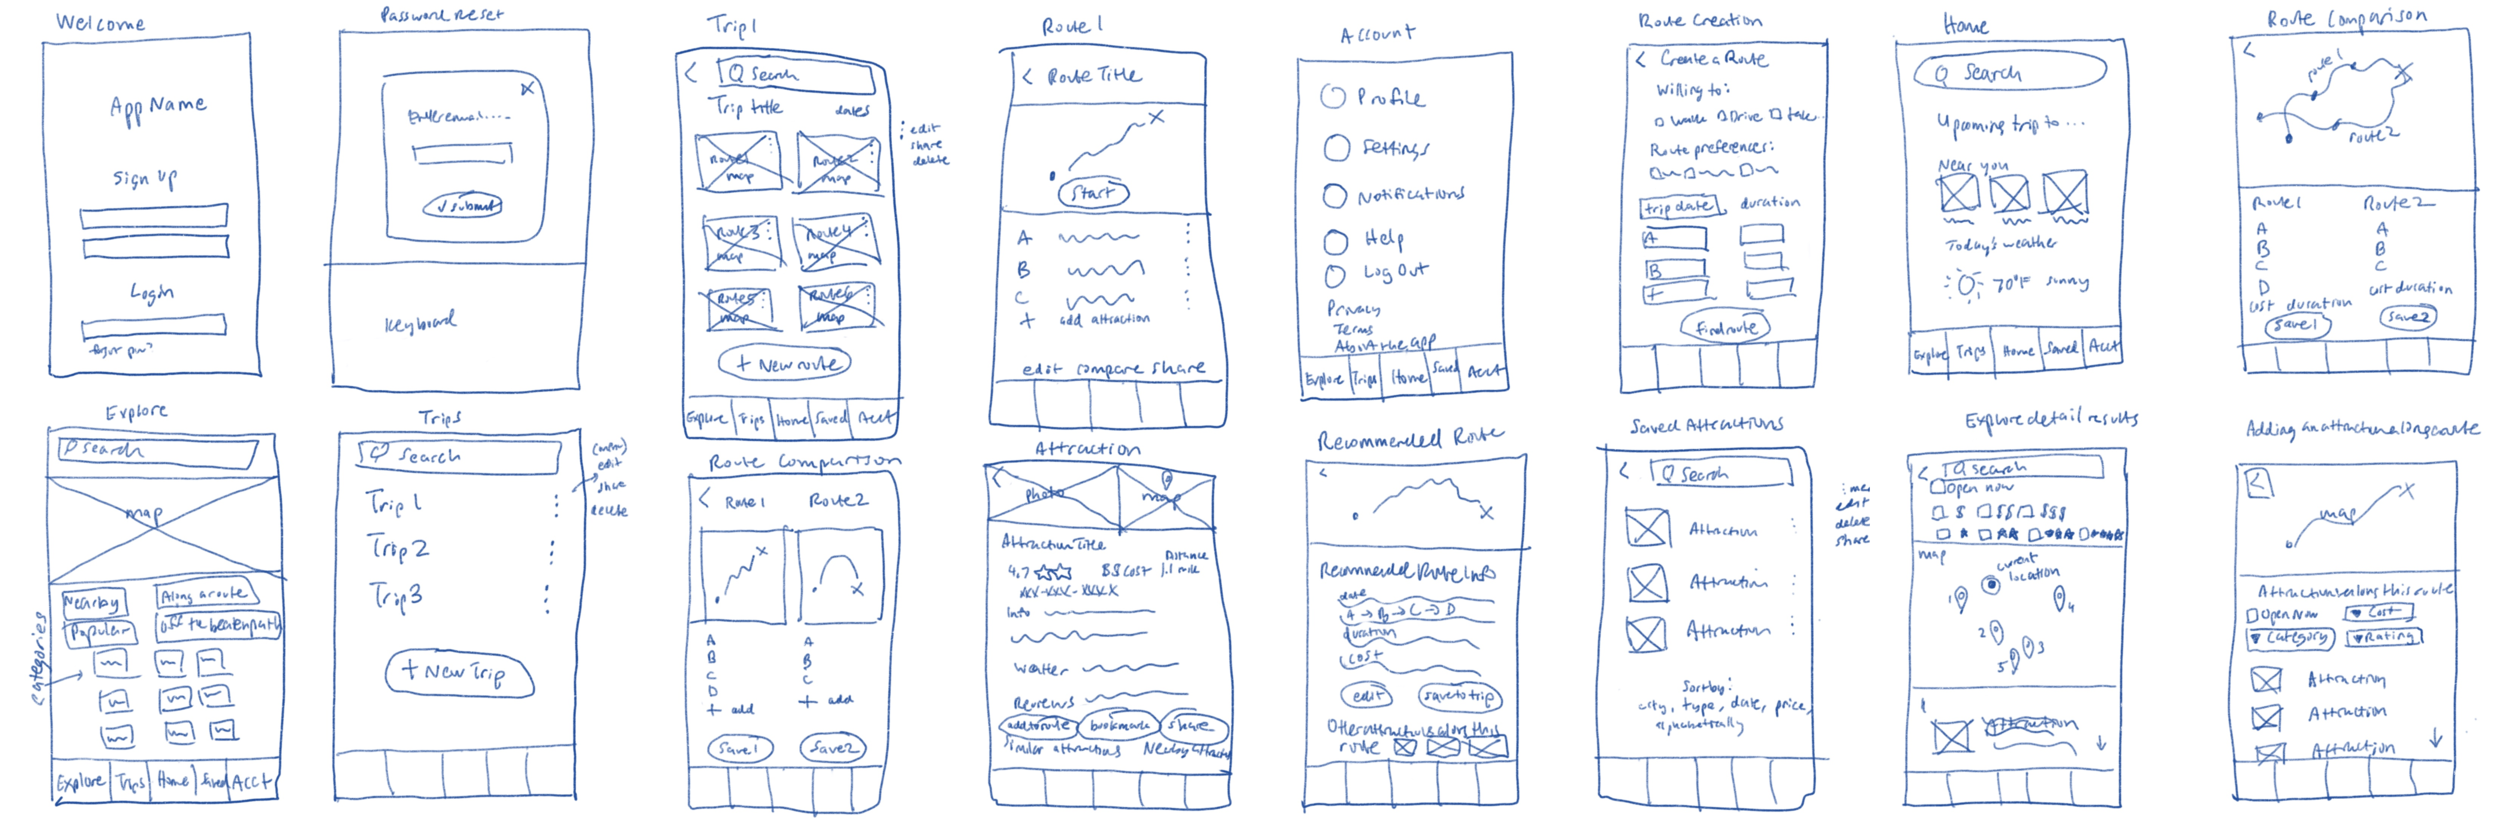 Low-fidelity wireframes.png